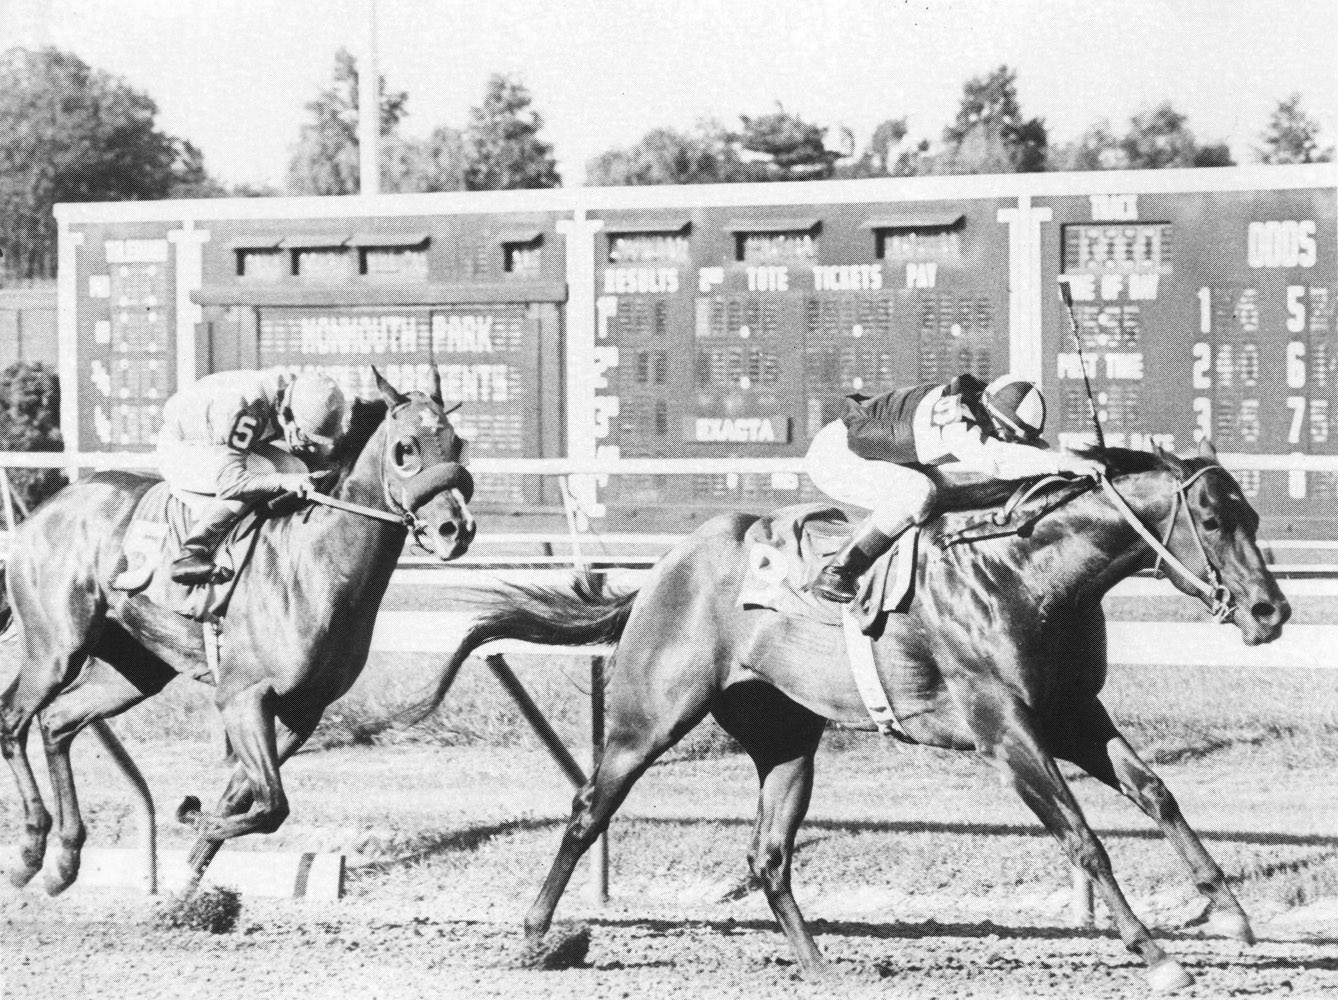 Foolish Pleasure (Jacinto Vasquez up) winning the 1974 Sapling Stakes at Monmouth Park (Museum Collection)